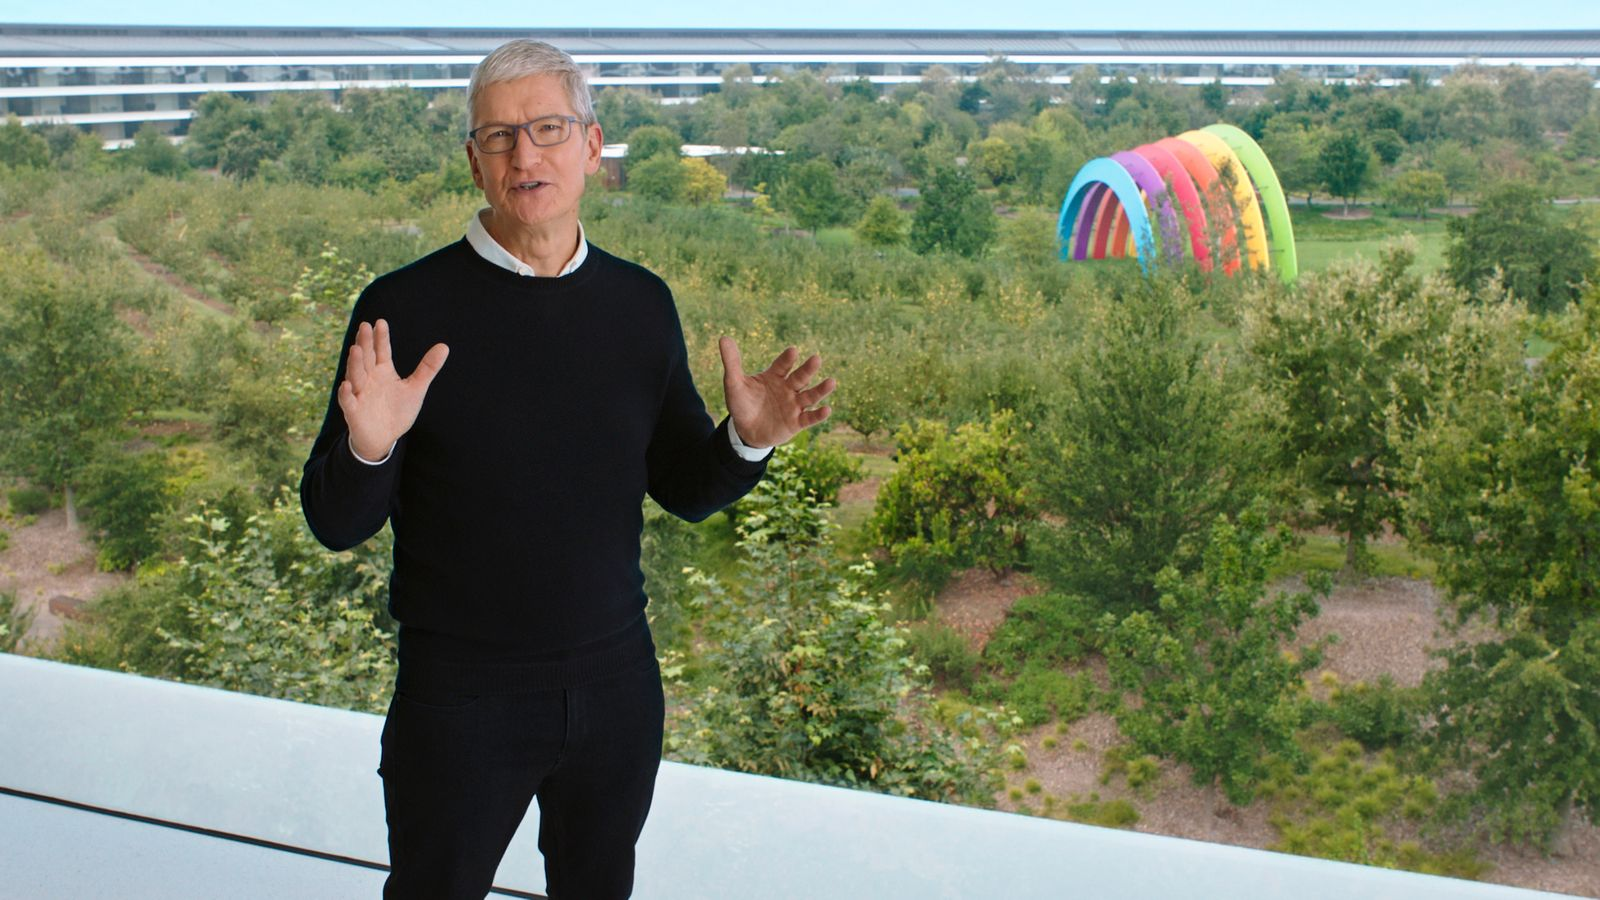 Apple launches new products at online event